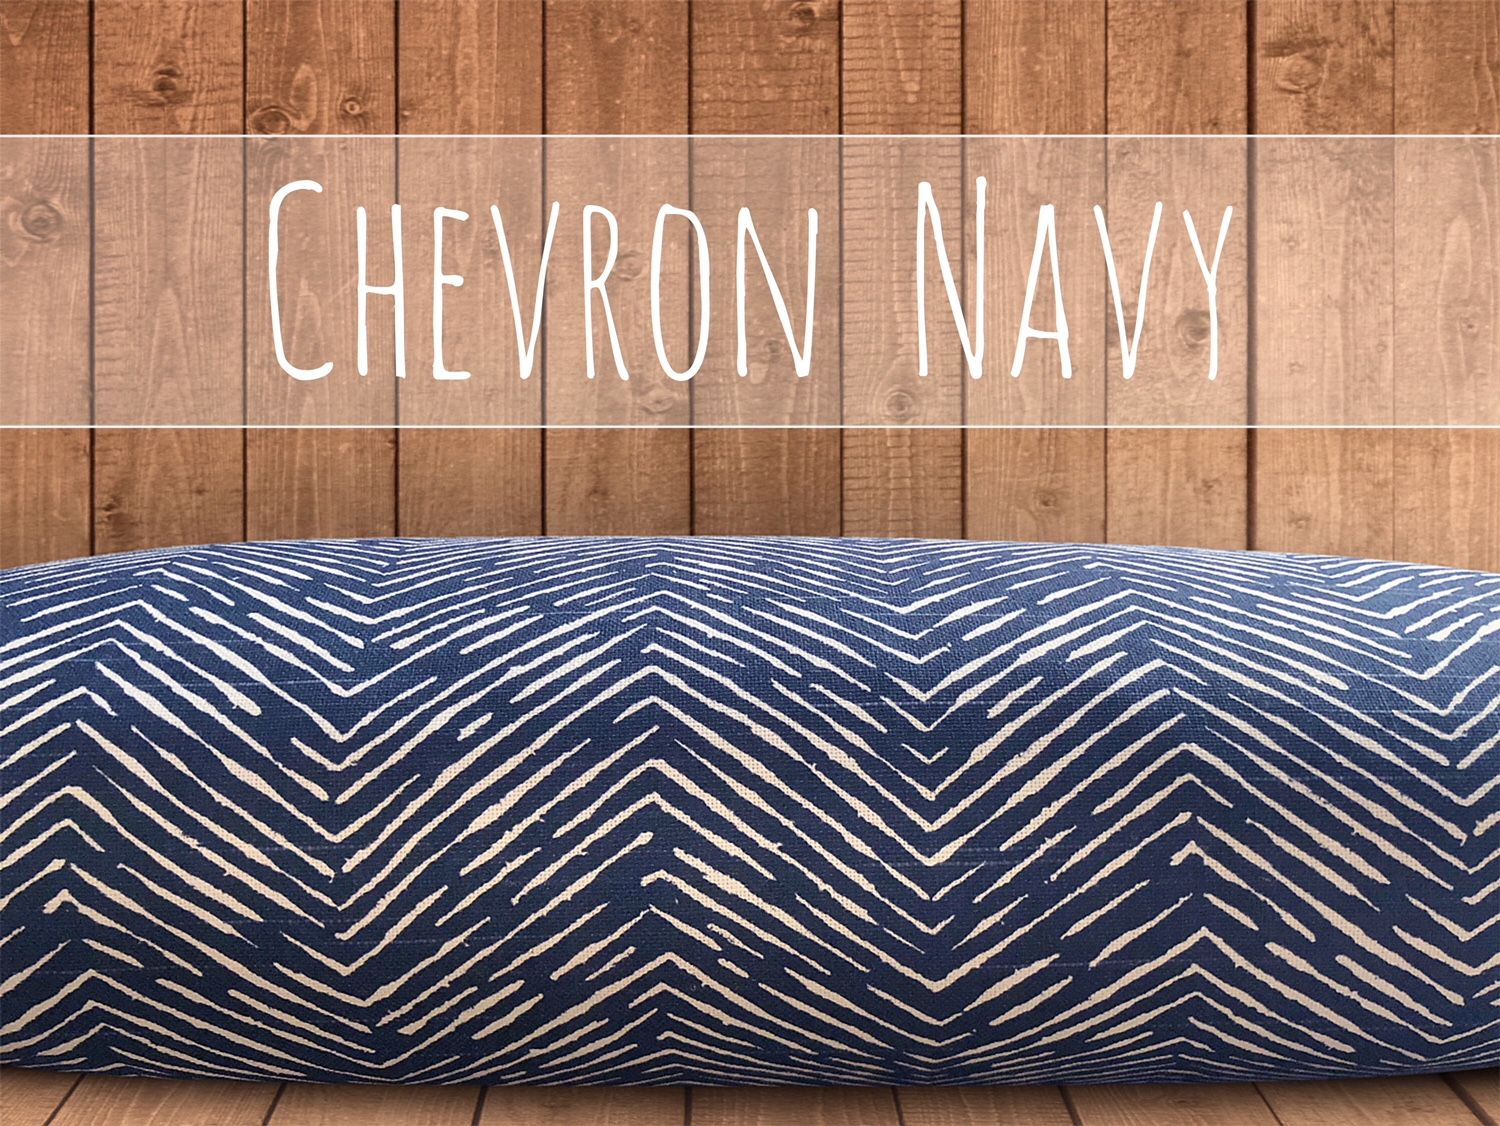 Chevron Navy Dog Bed Cover